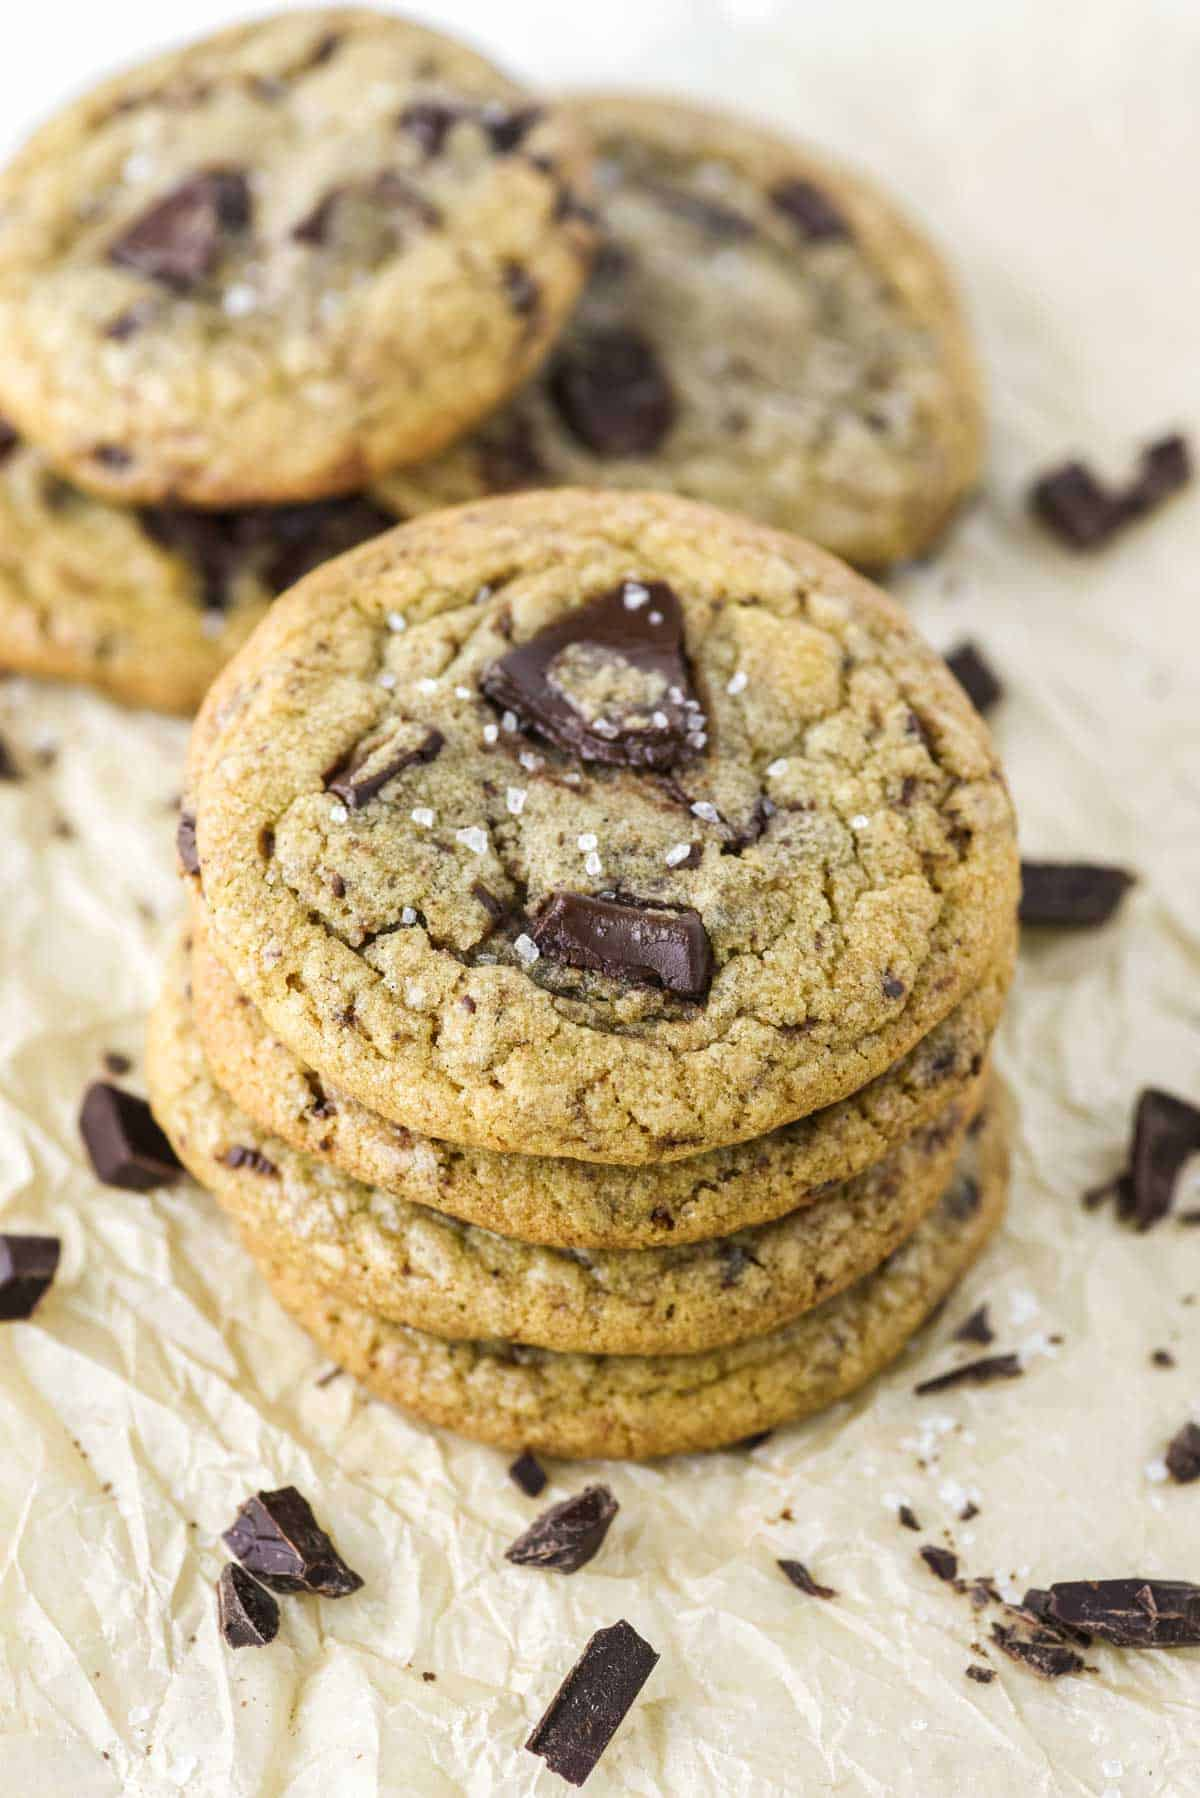 4 cookies stacked on top of each other on parchment paper